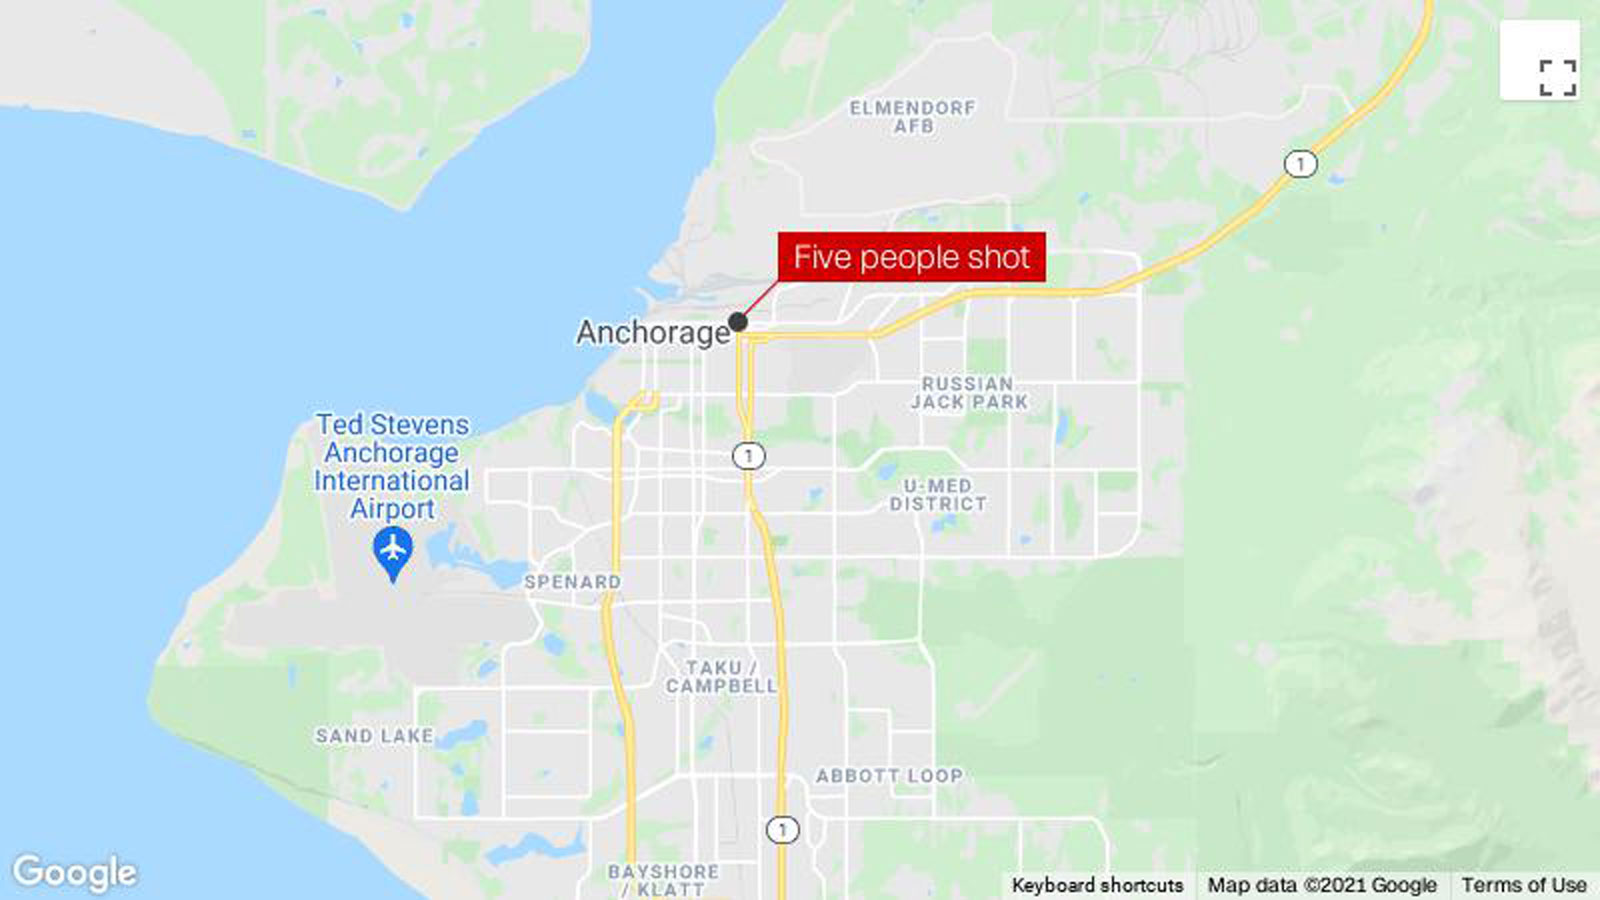 Five shot, one fatally, in downtown Anchorage, Alaska